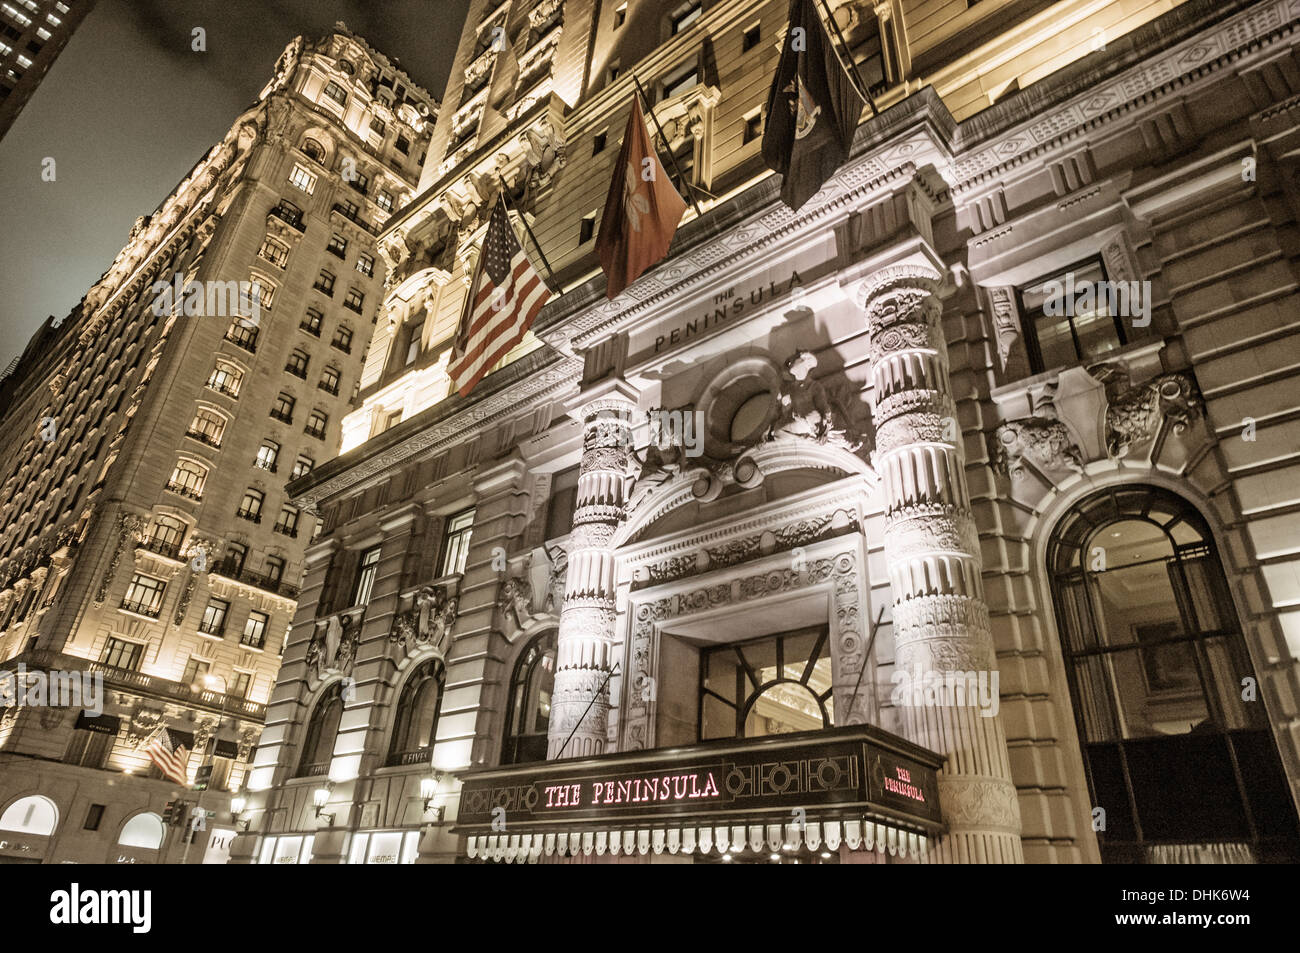 Hotel Peninsula, The Gotham, architectural bureau Hiss und Weekes, Fith Avenue, Manhattan, New York, USA - Stock Image